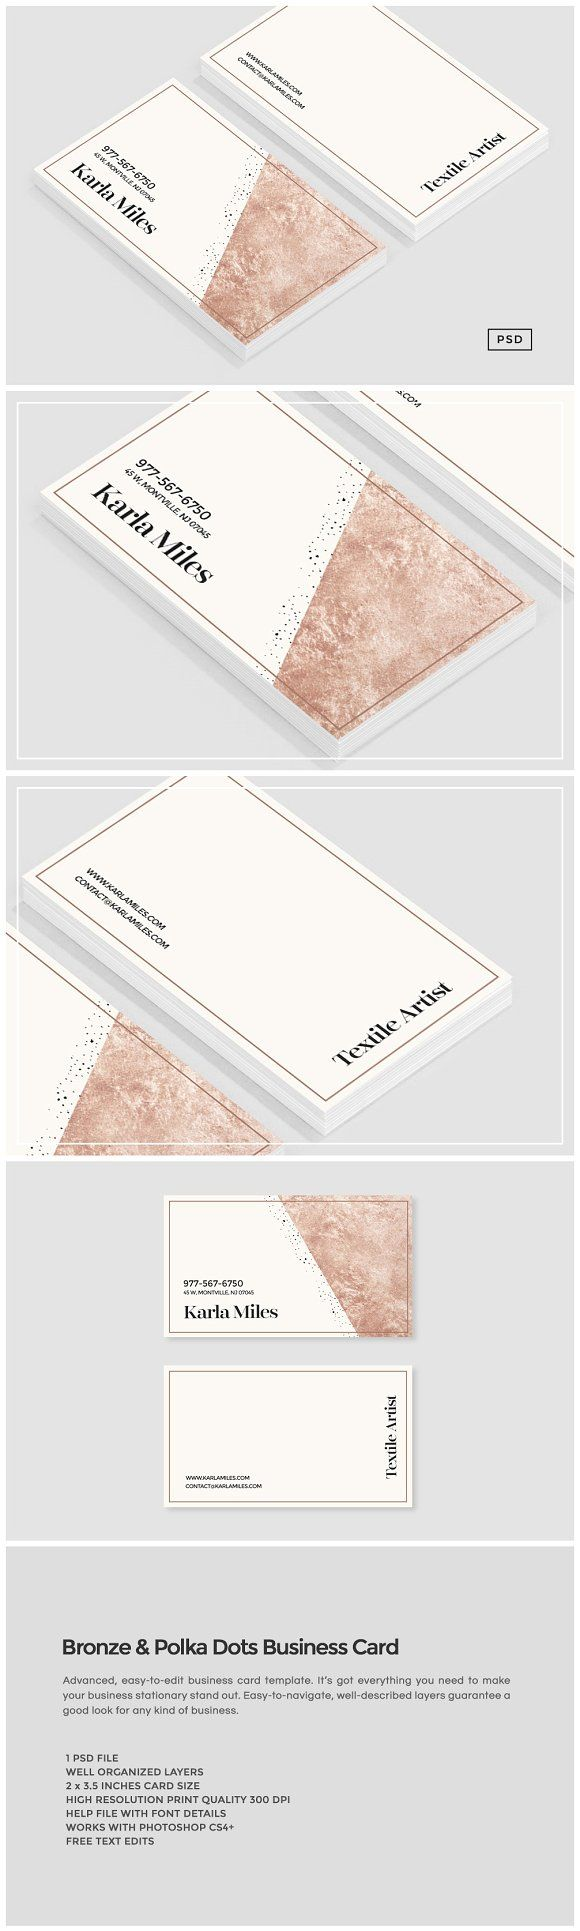 Bronze polka dots business card by the design label on bronze polka dots business card templates introducing our gorgeous bronze polka dots business card template perfect for use in your next pr by the design cheaphphosting Images